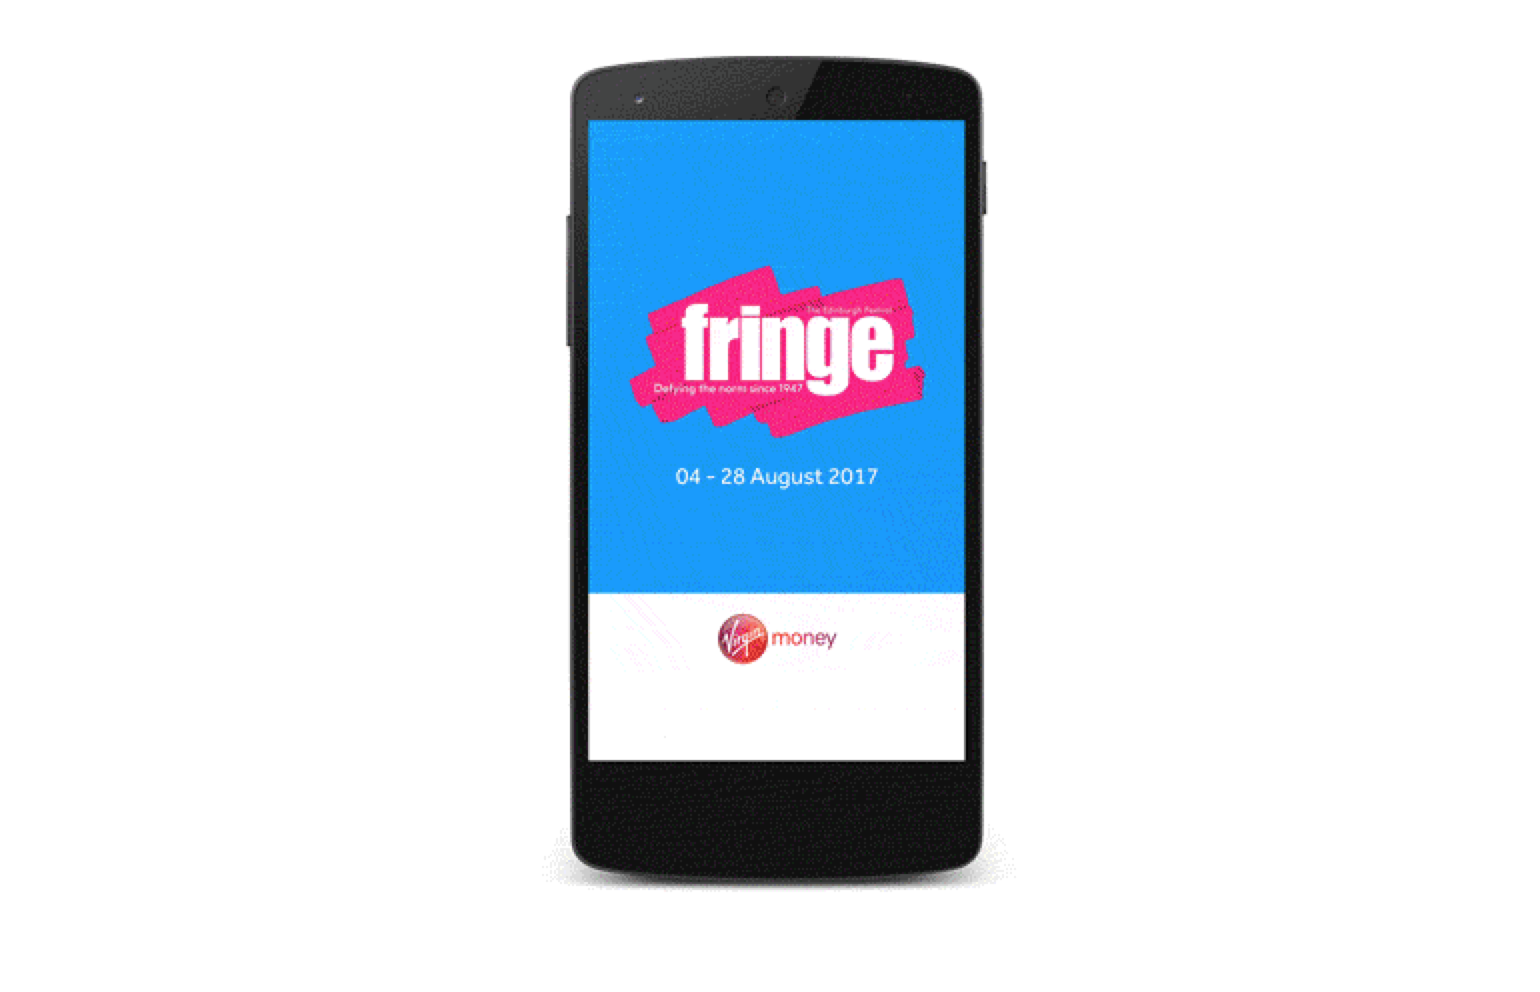 Happy World Fringe Day: The Edinburgh Fringe Festival App Has Arrived!